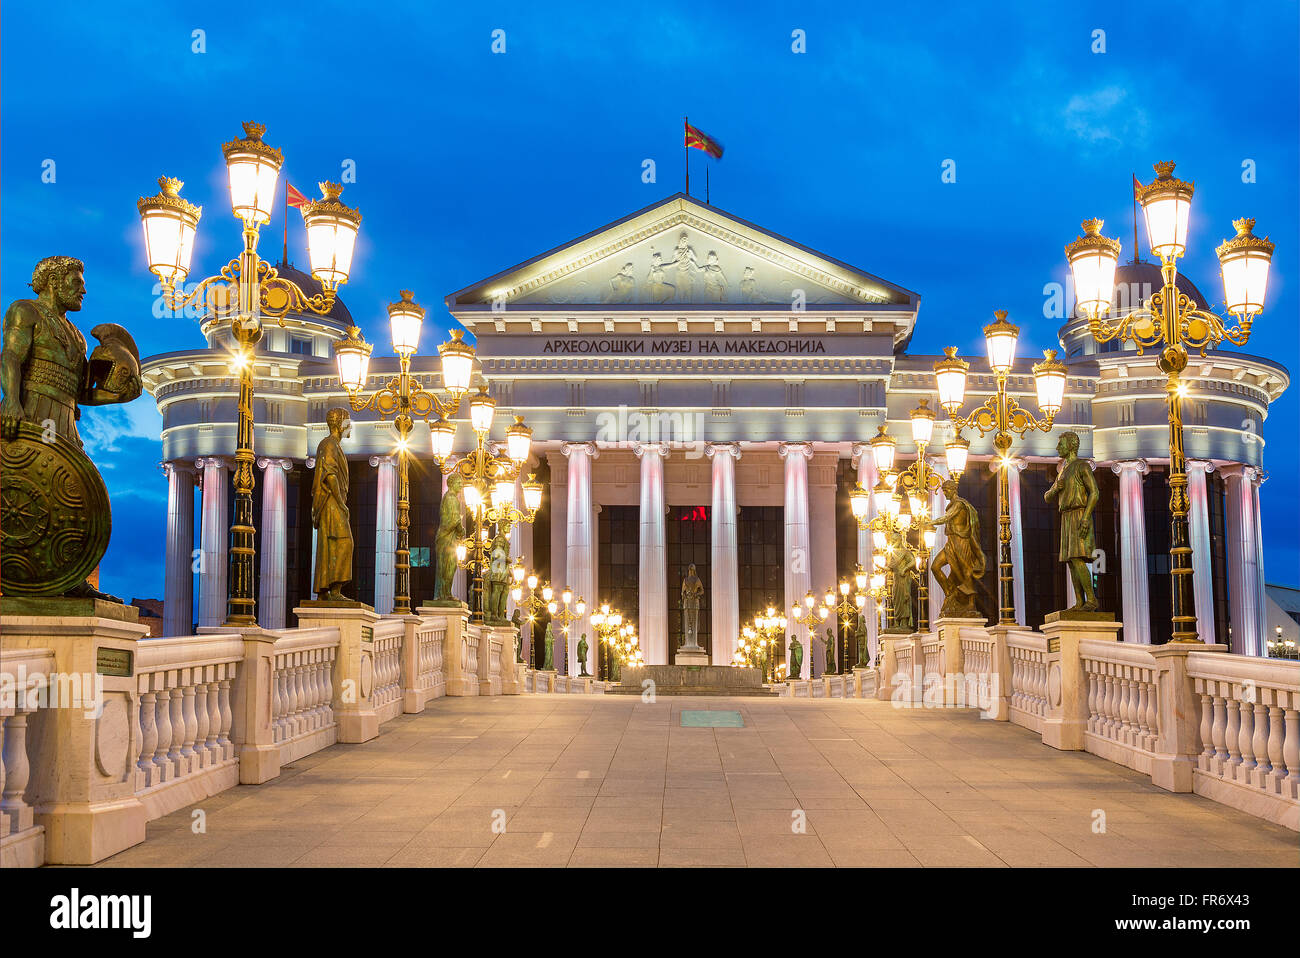 republic of Macedonia, Skopje, the Archeological Museum of Macedonia and the bridge of civilizations - Stock Image